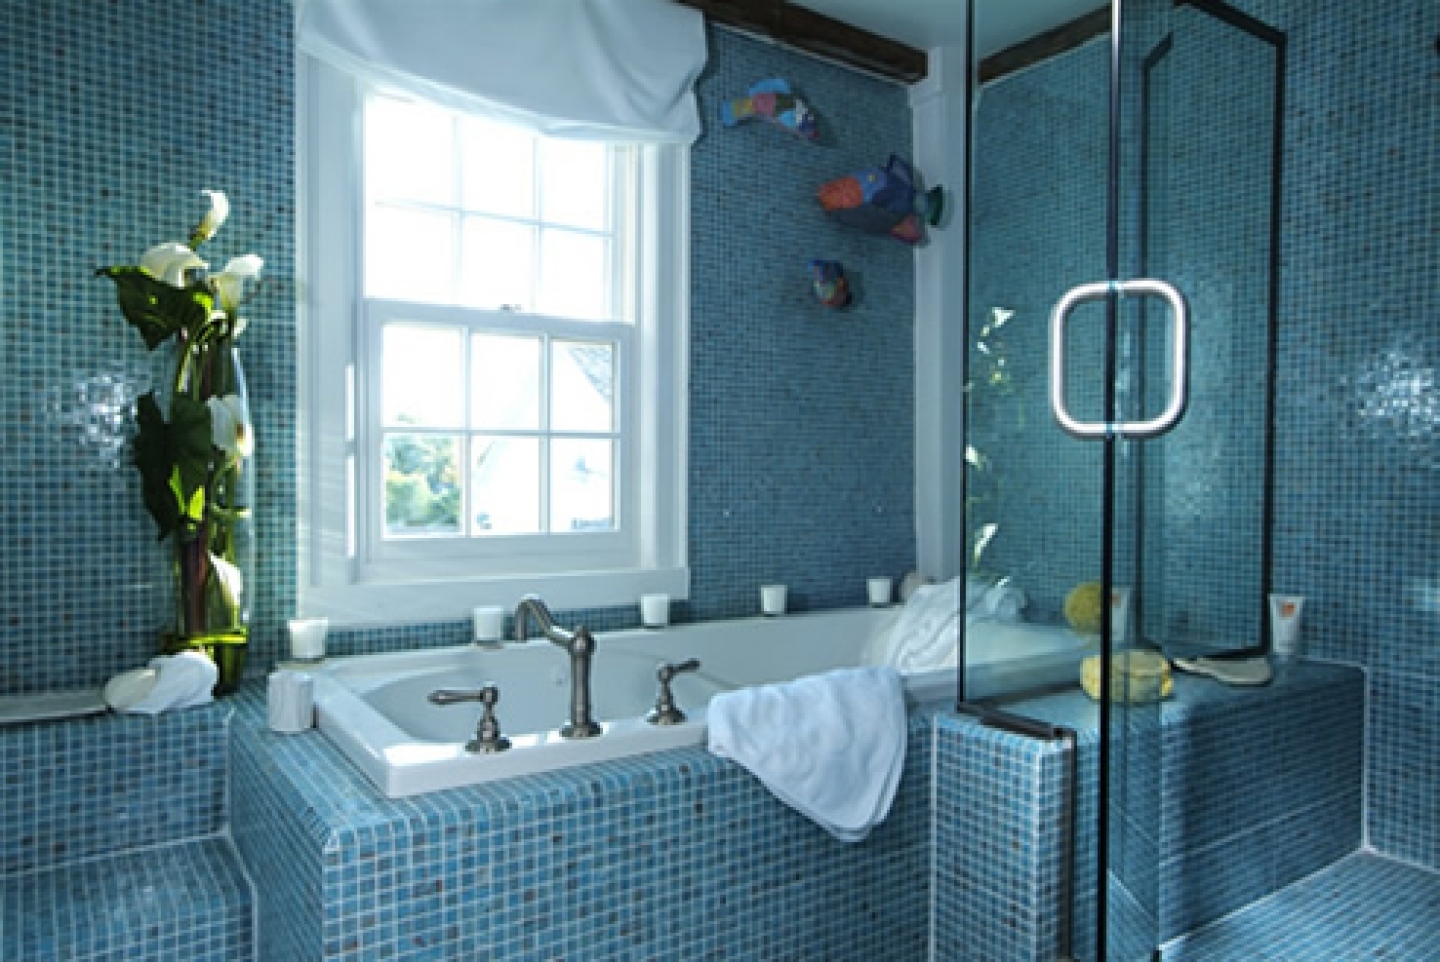 40 vintage blue bathroom tiles ideas and pictures for Designs of bathroom tiles